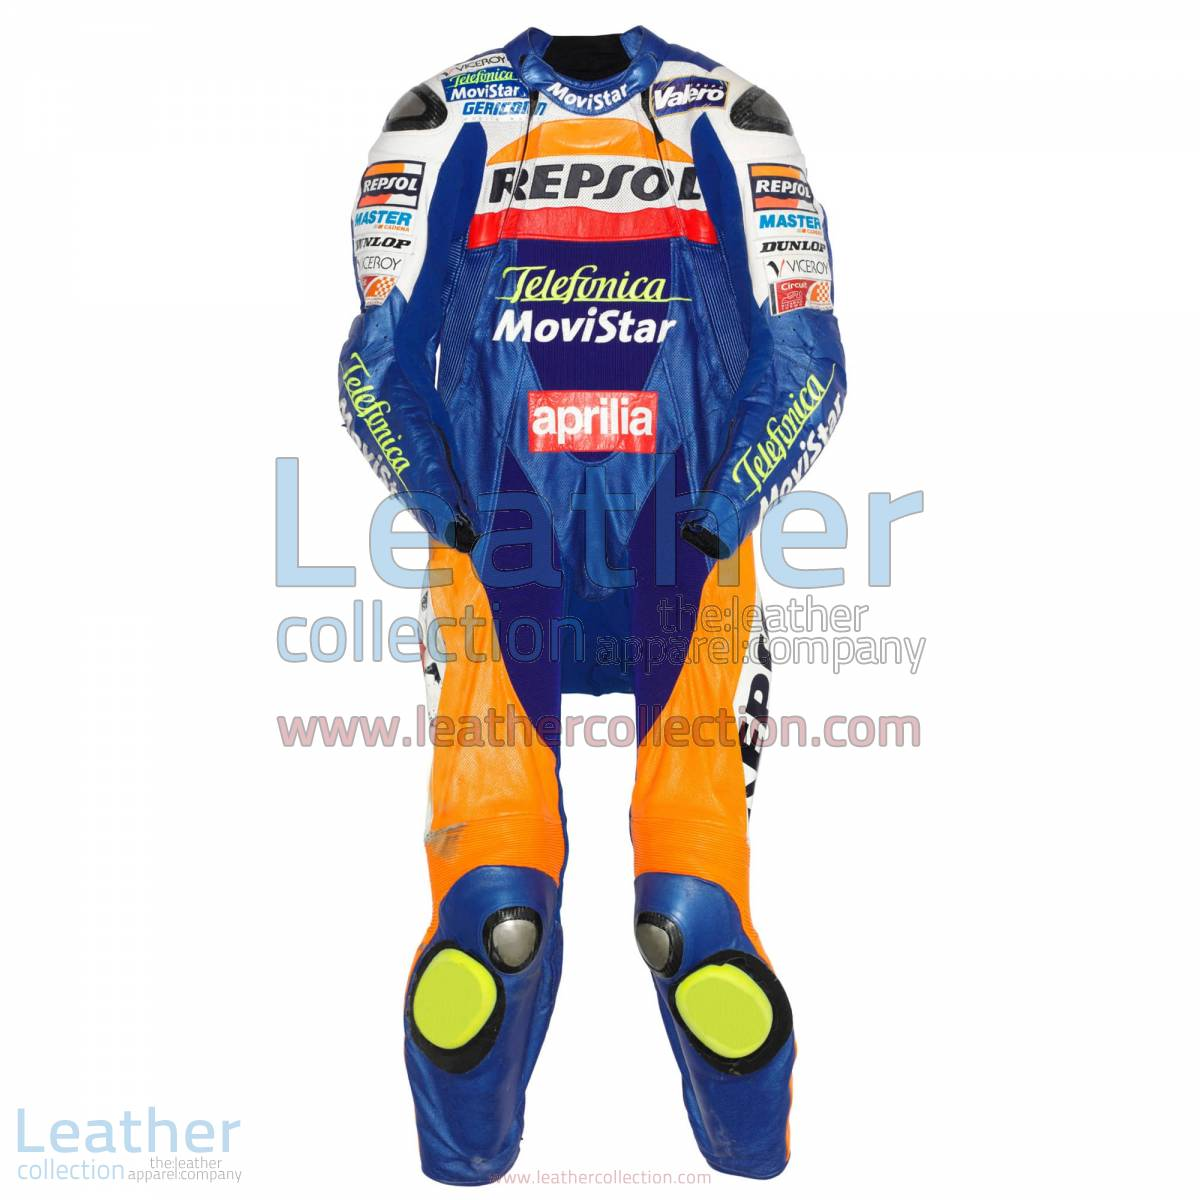 Alex Rins MotoGP 2017 Leather Racing Boots | Alex Rins,Alex Rins MotoGP 2017 Leather Racing Boots